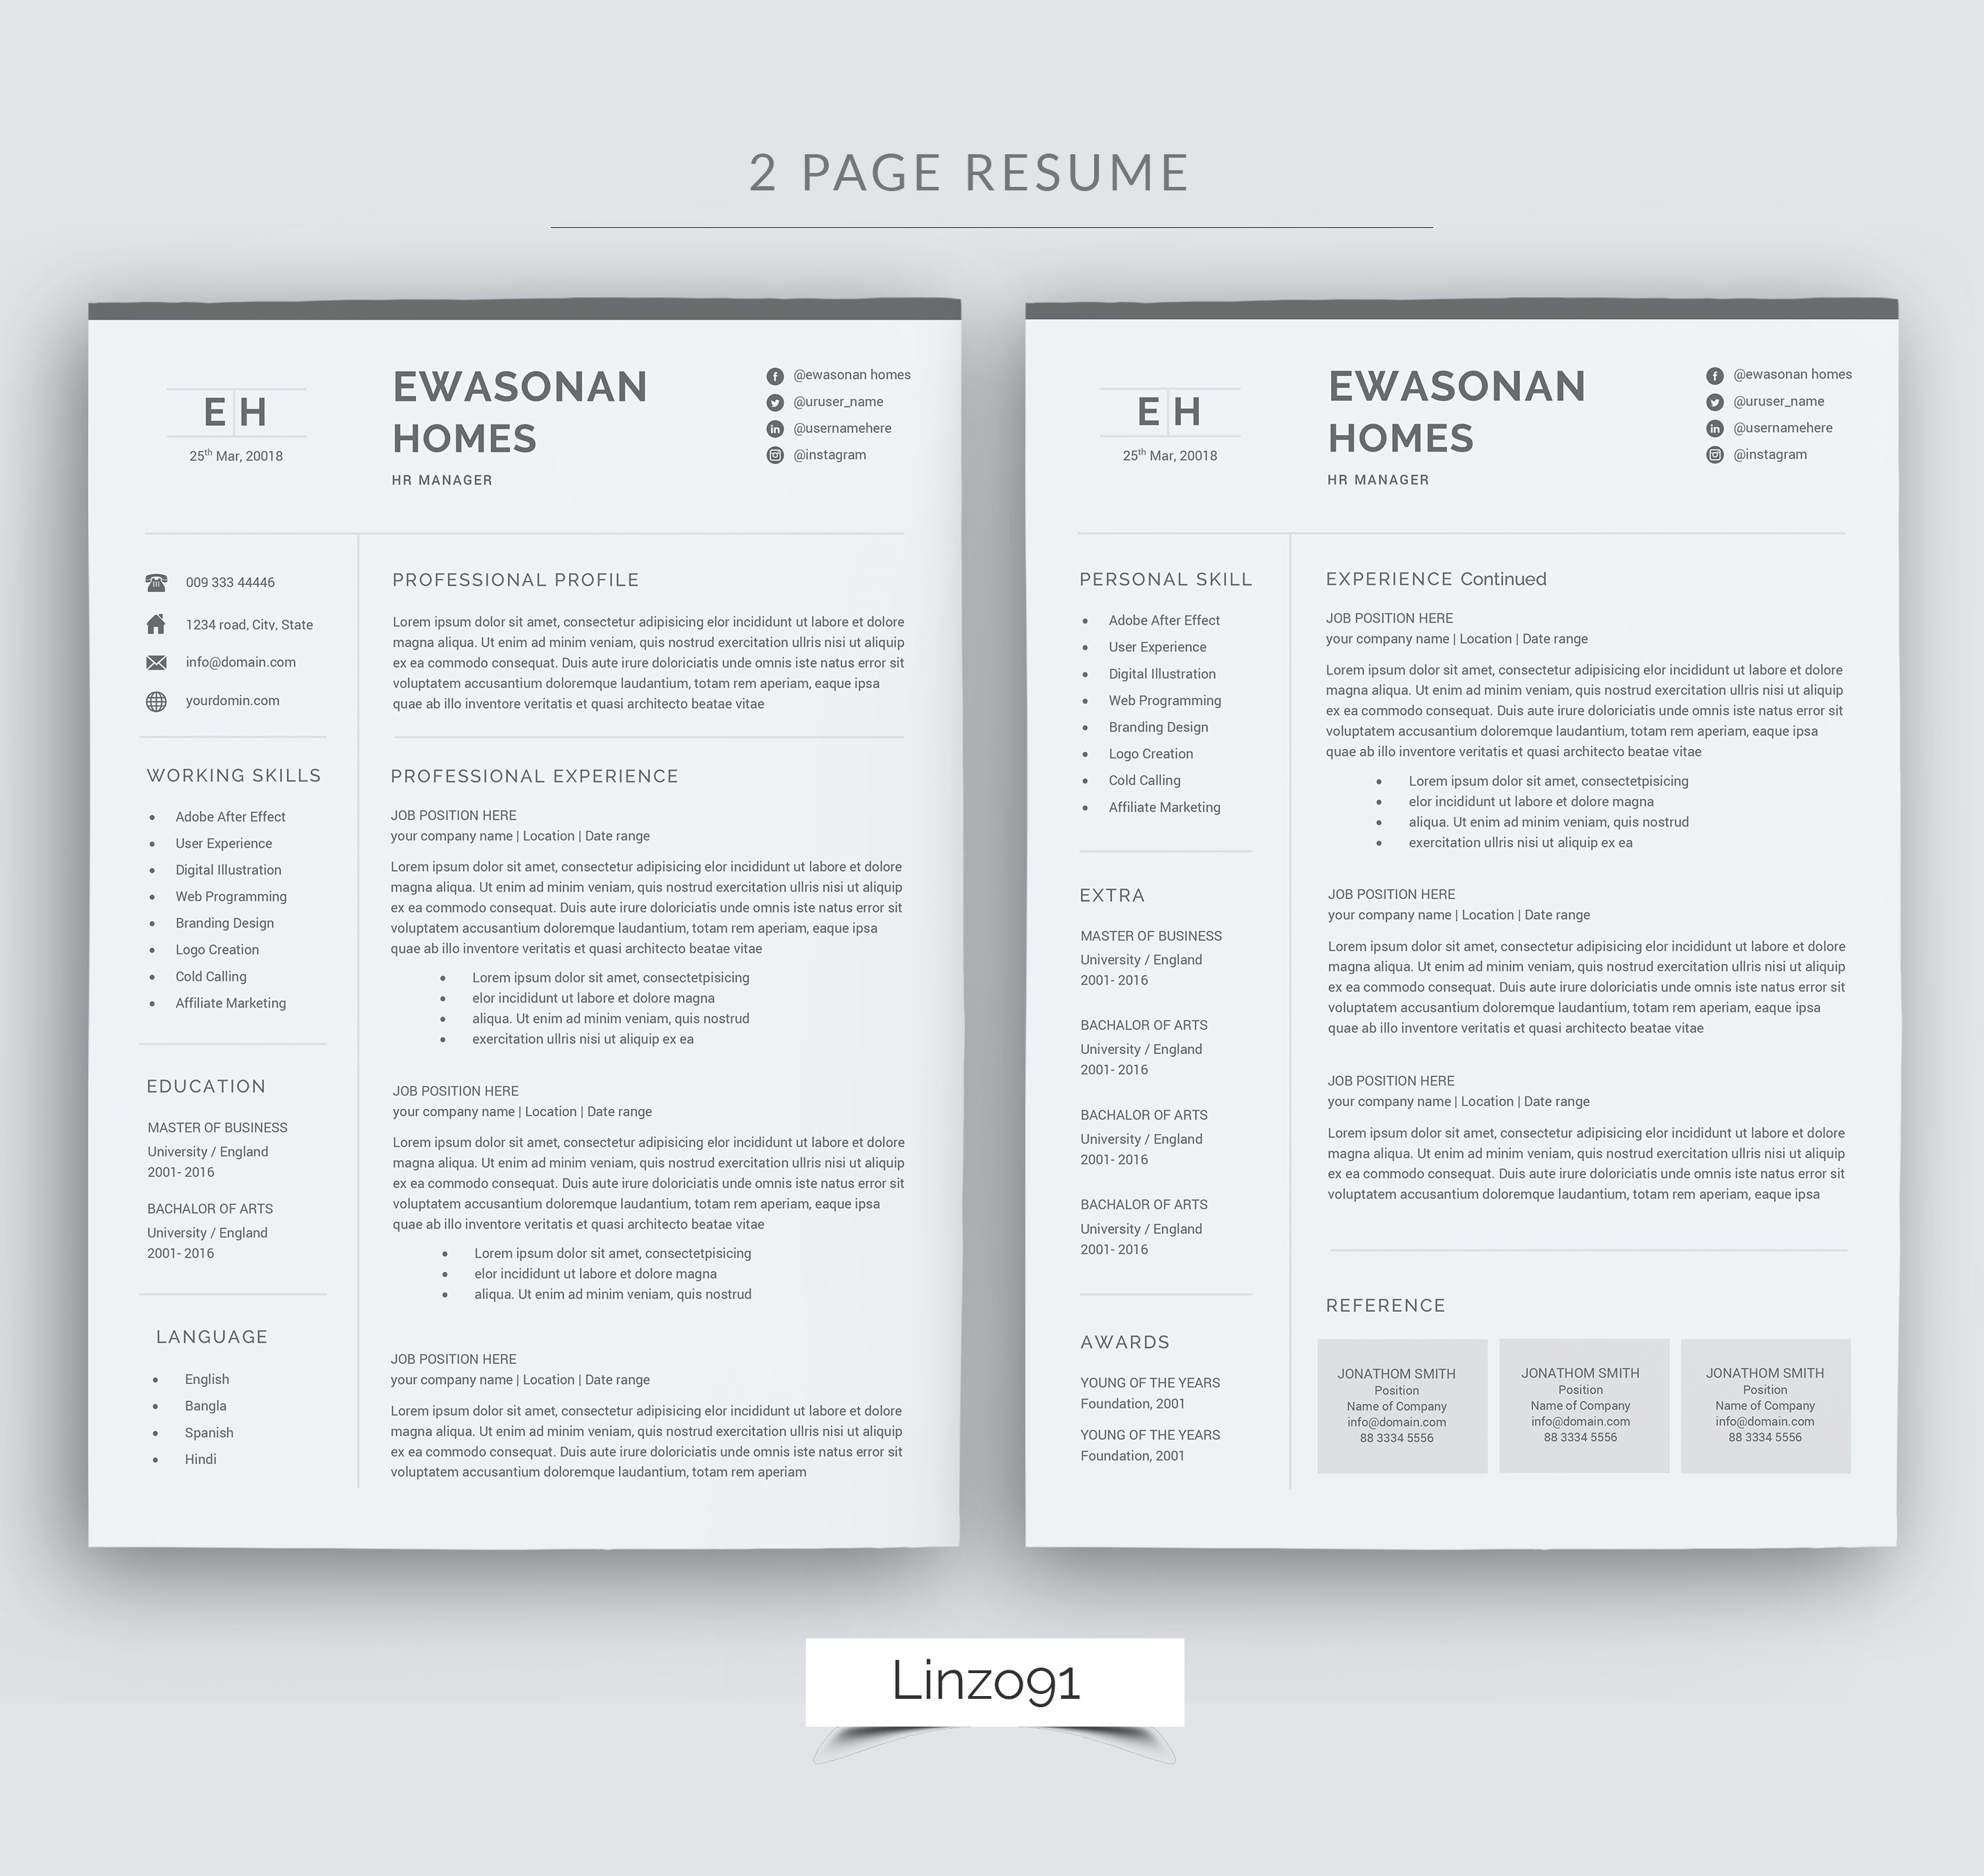 Pages Templates Resume Minimal Resume 3 Pages Cv Template For Word Two Page Resume Cover Letter In Word Teacher Resume Simple Resume